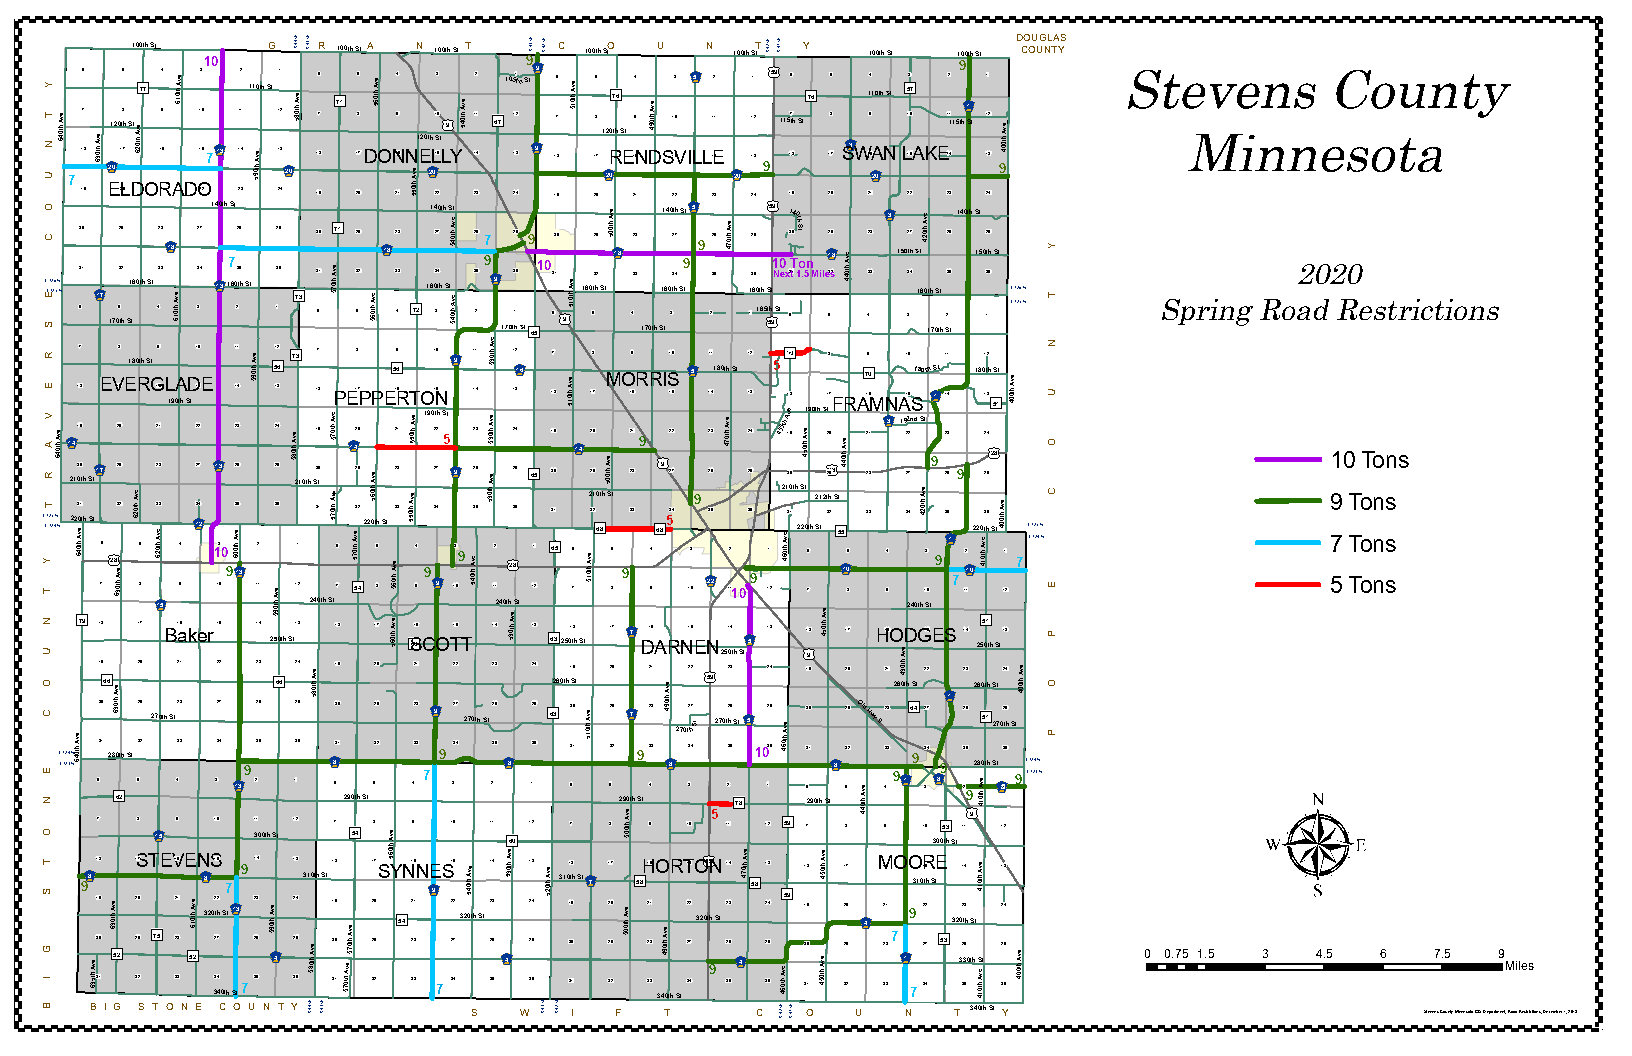 Spring Road Restrictions 2020.jpg